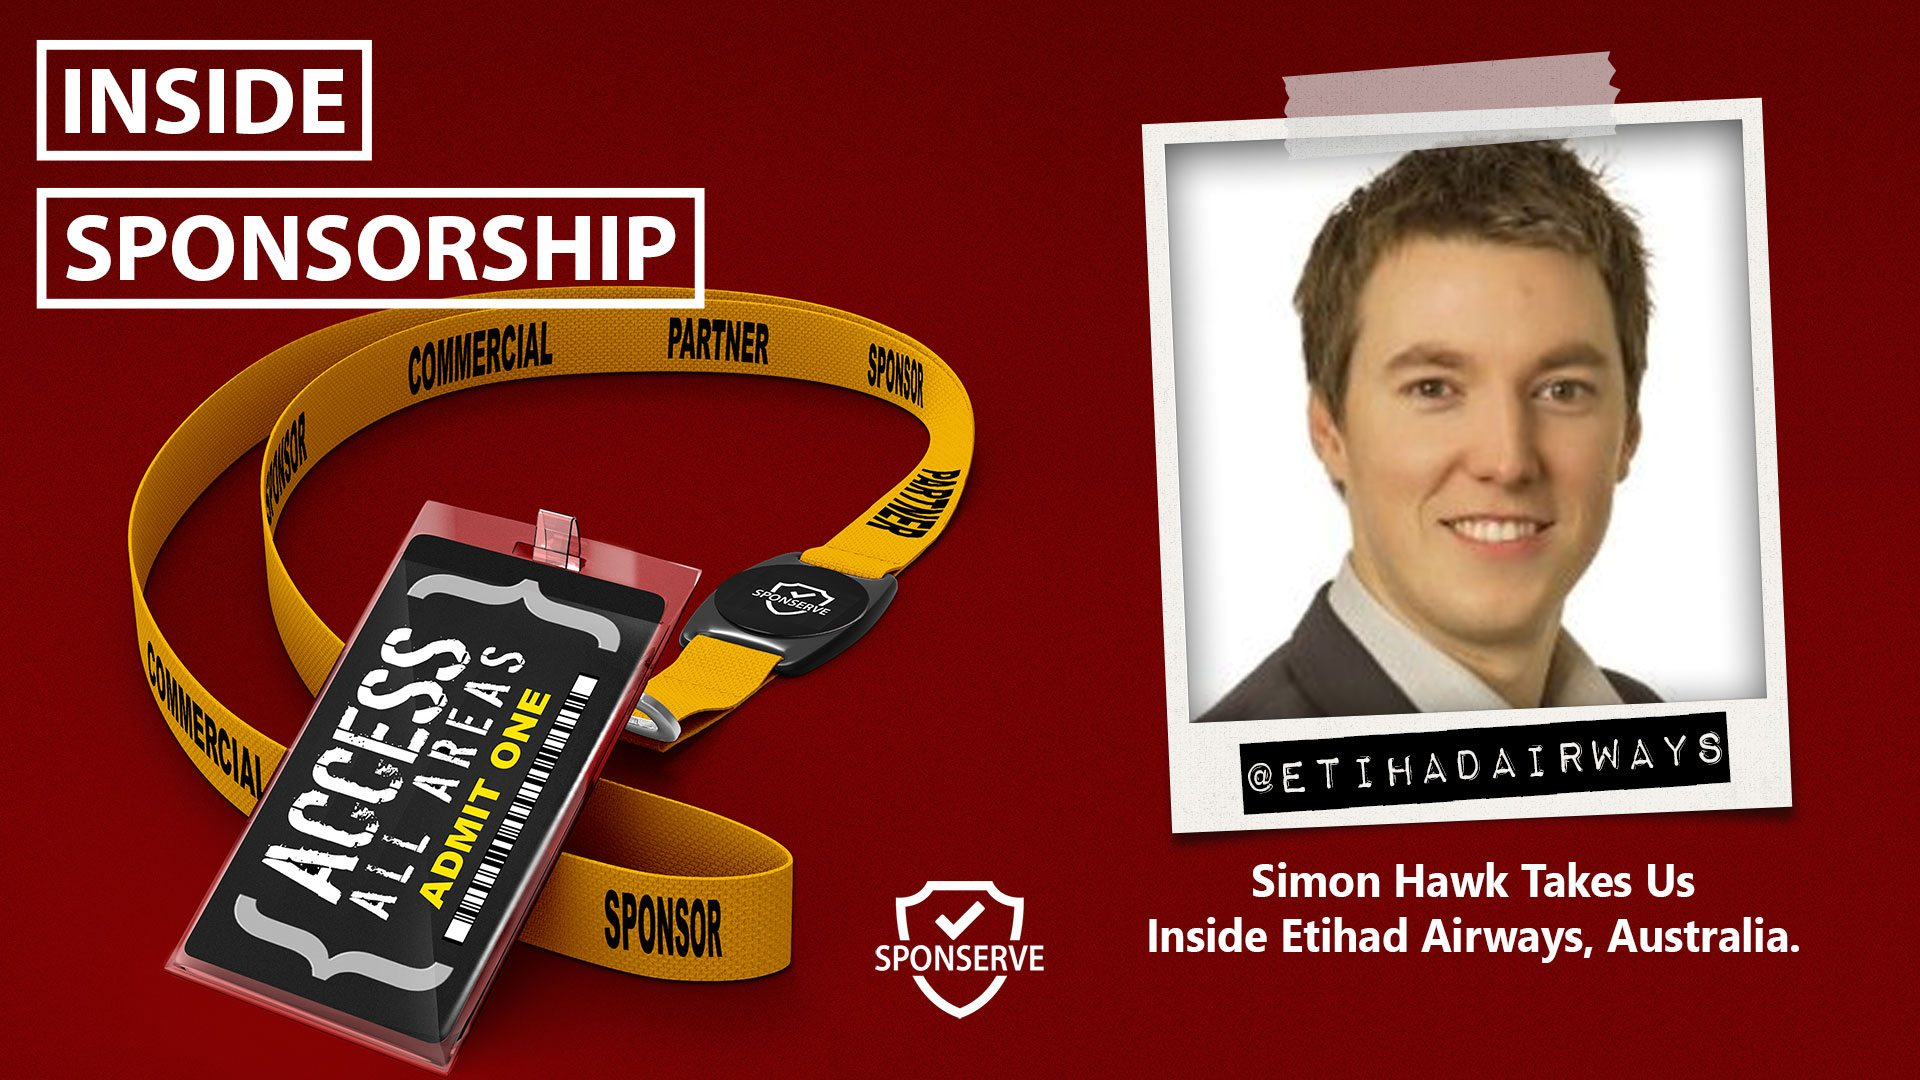 Inside Sponsorship - Simon Hawk - Etihad Airways Australia - Episode 47 - November 2017